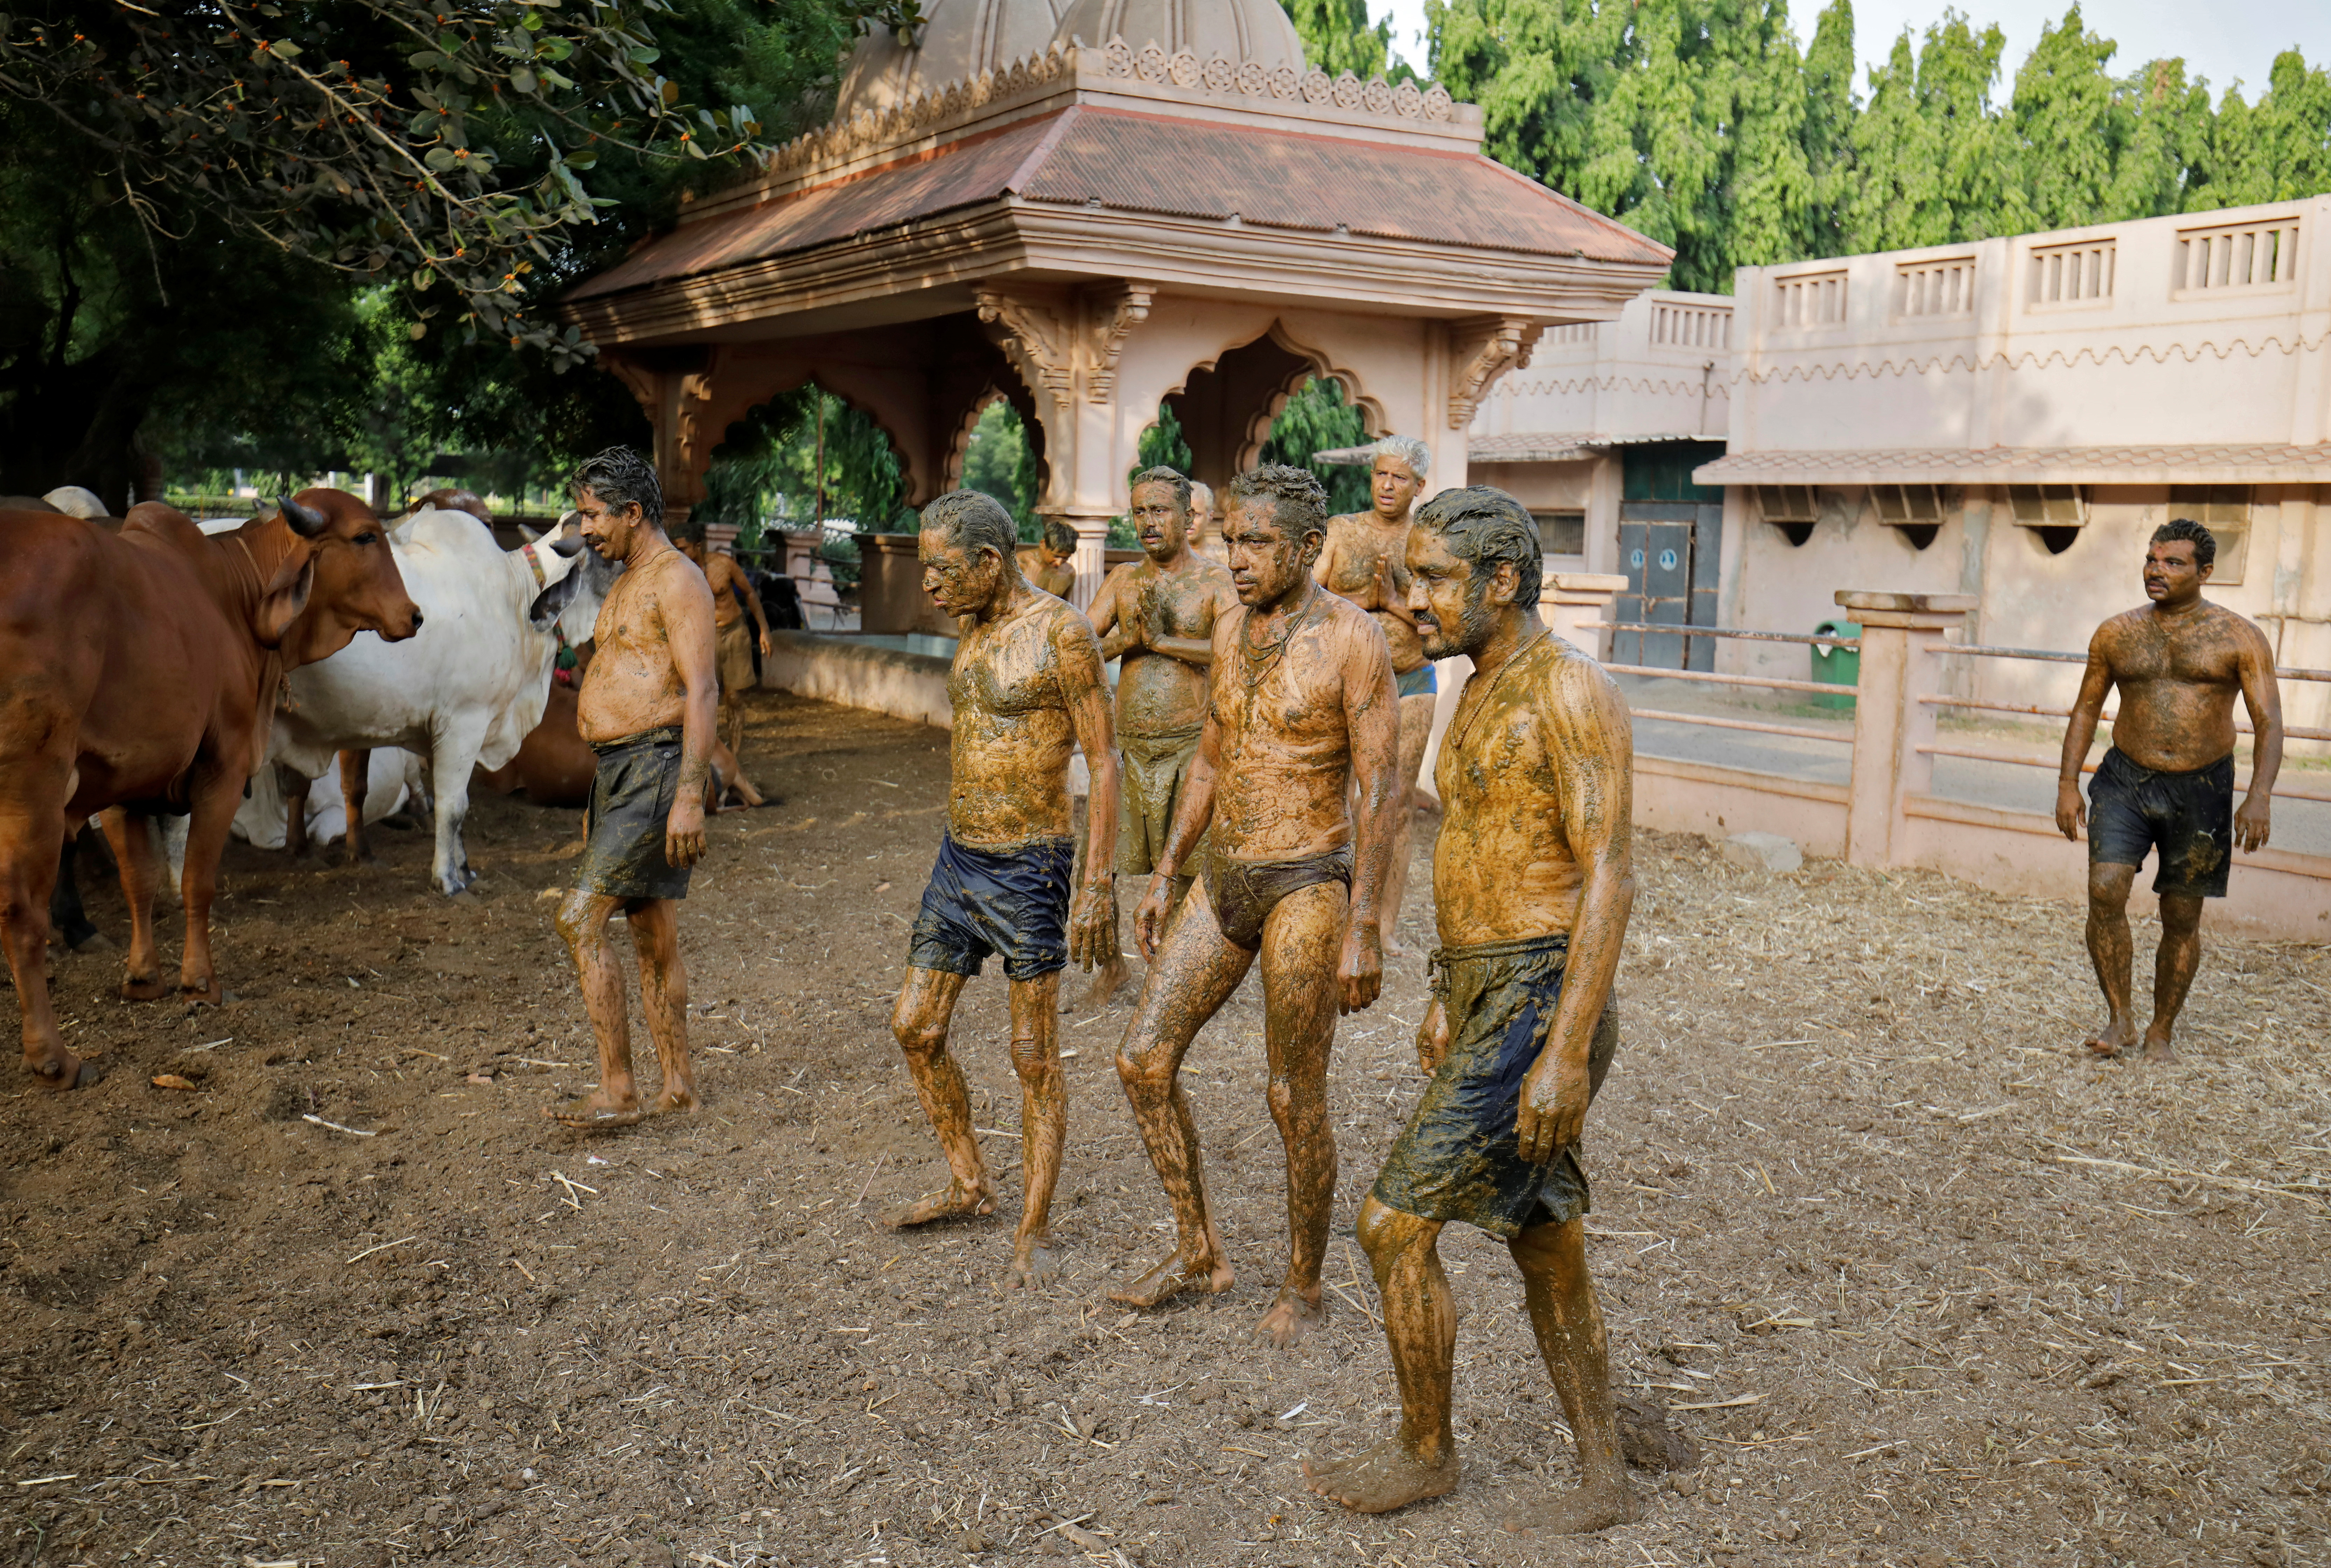 """People walk after applying cow dung on their bodies during """"cow dung therapy"""", believing it will boost their immunity to defend against the coronavirus disease (COVID-19) at the Shree Swaminarayan Gurukul Vishwavidya Pratishthanam Gaushala or cow shelter on the outskirts of Ahmedabad, India, May 9, 2021. REUTERS/Amit Dave"""